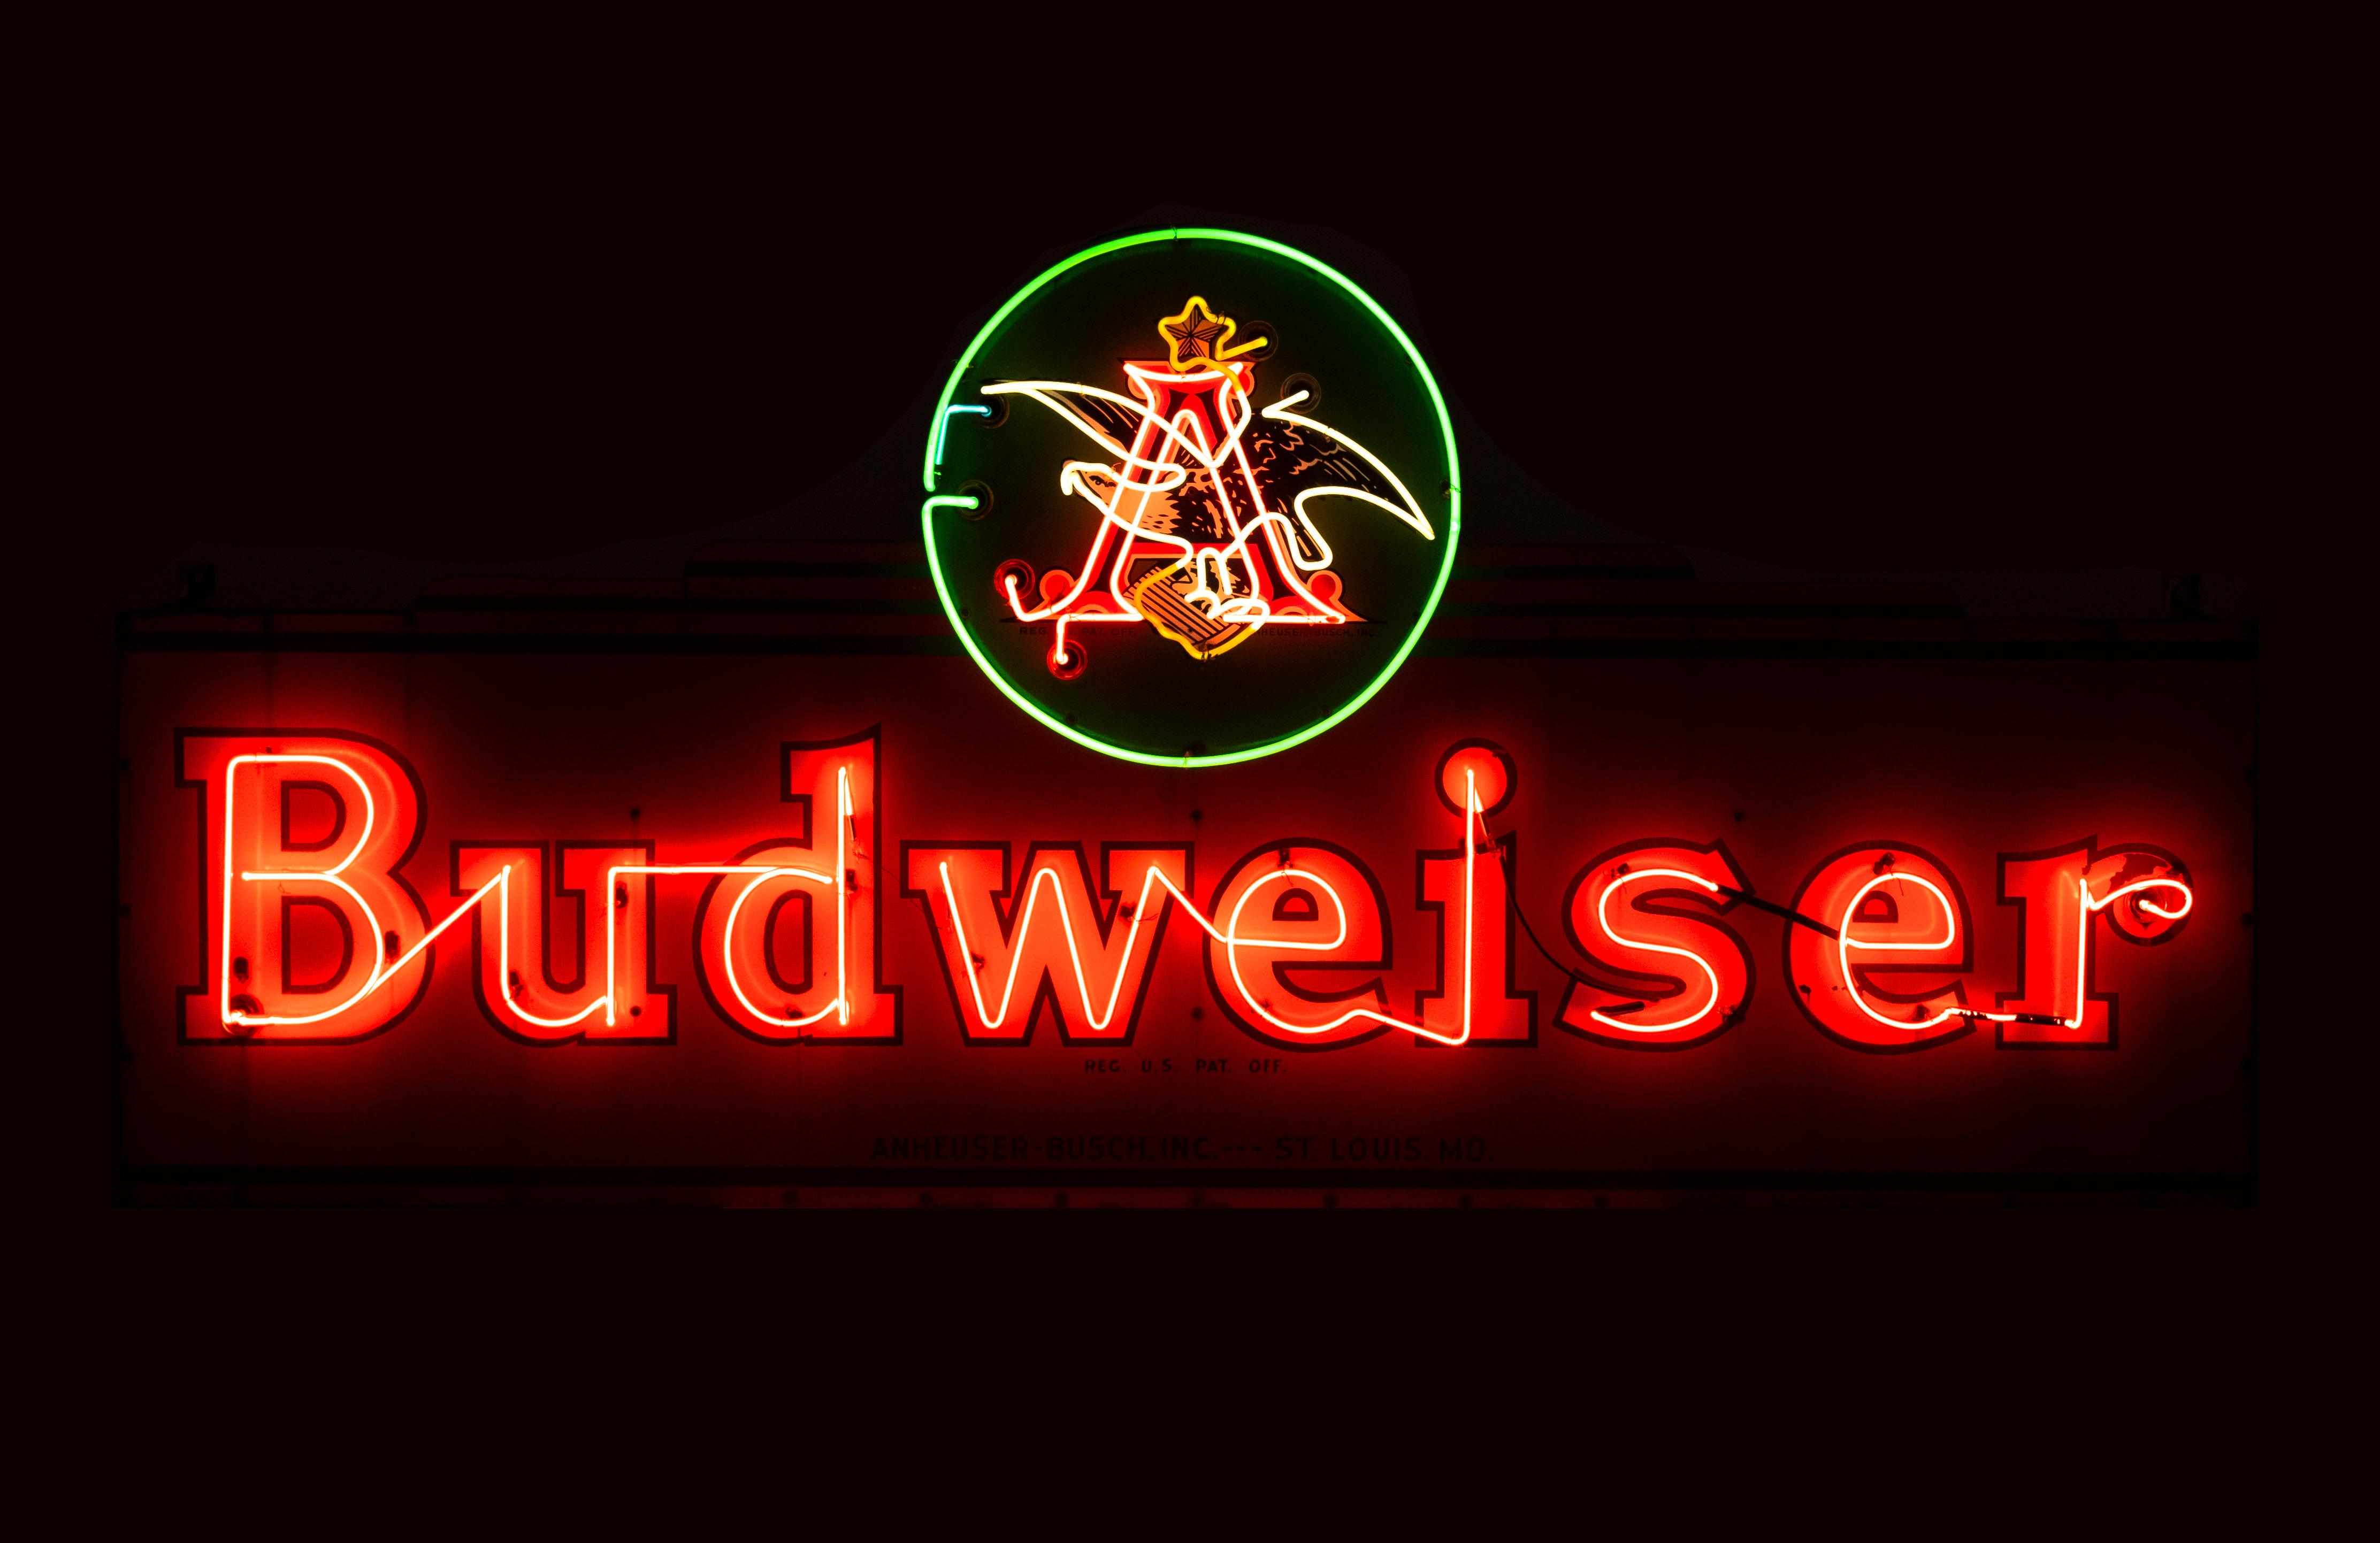 Vintage Anheuser Busch Budweiser Neon Sign Total height 4 feet 3 inches, width 9 feet, depth 10 inches